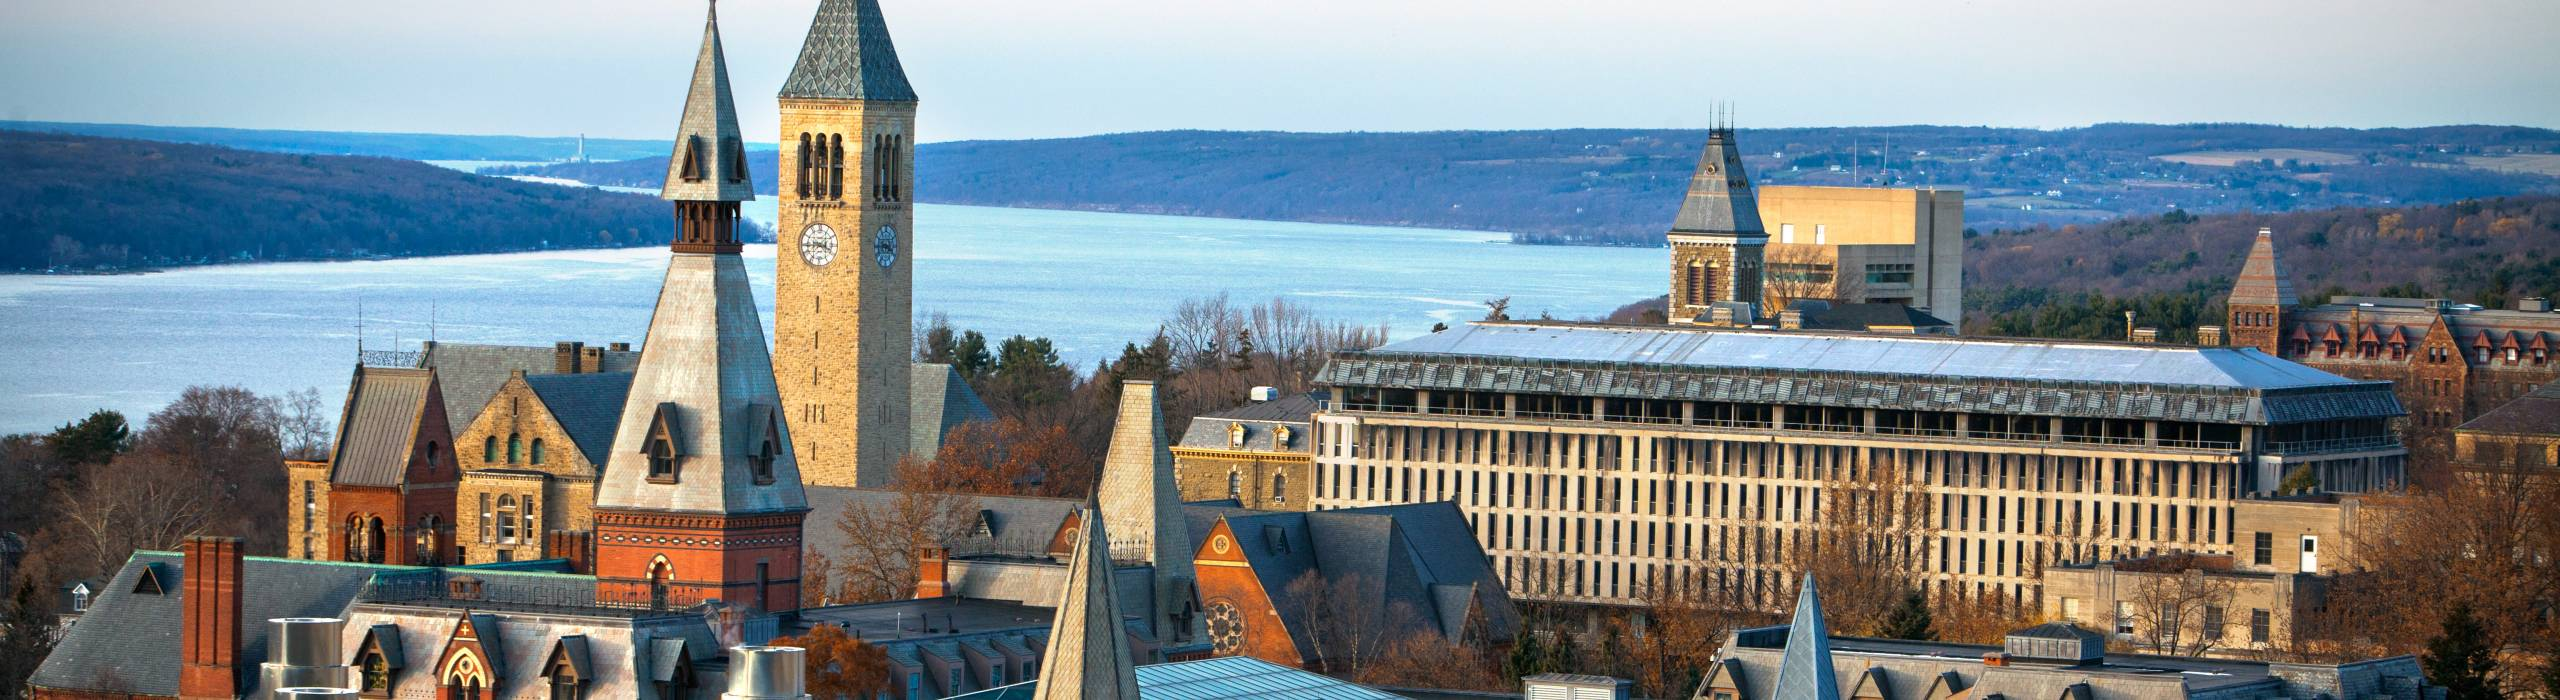 A view of the Cornell campus